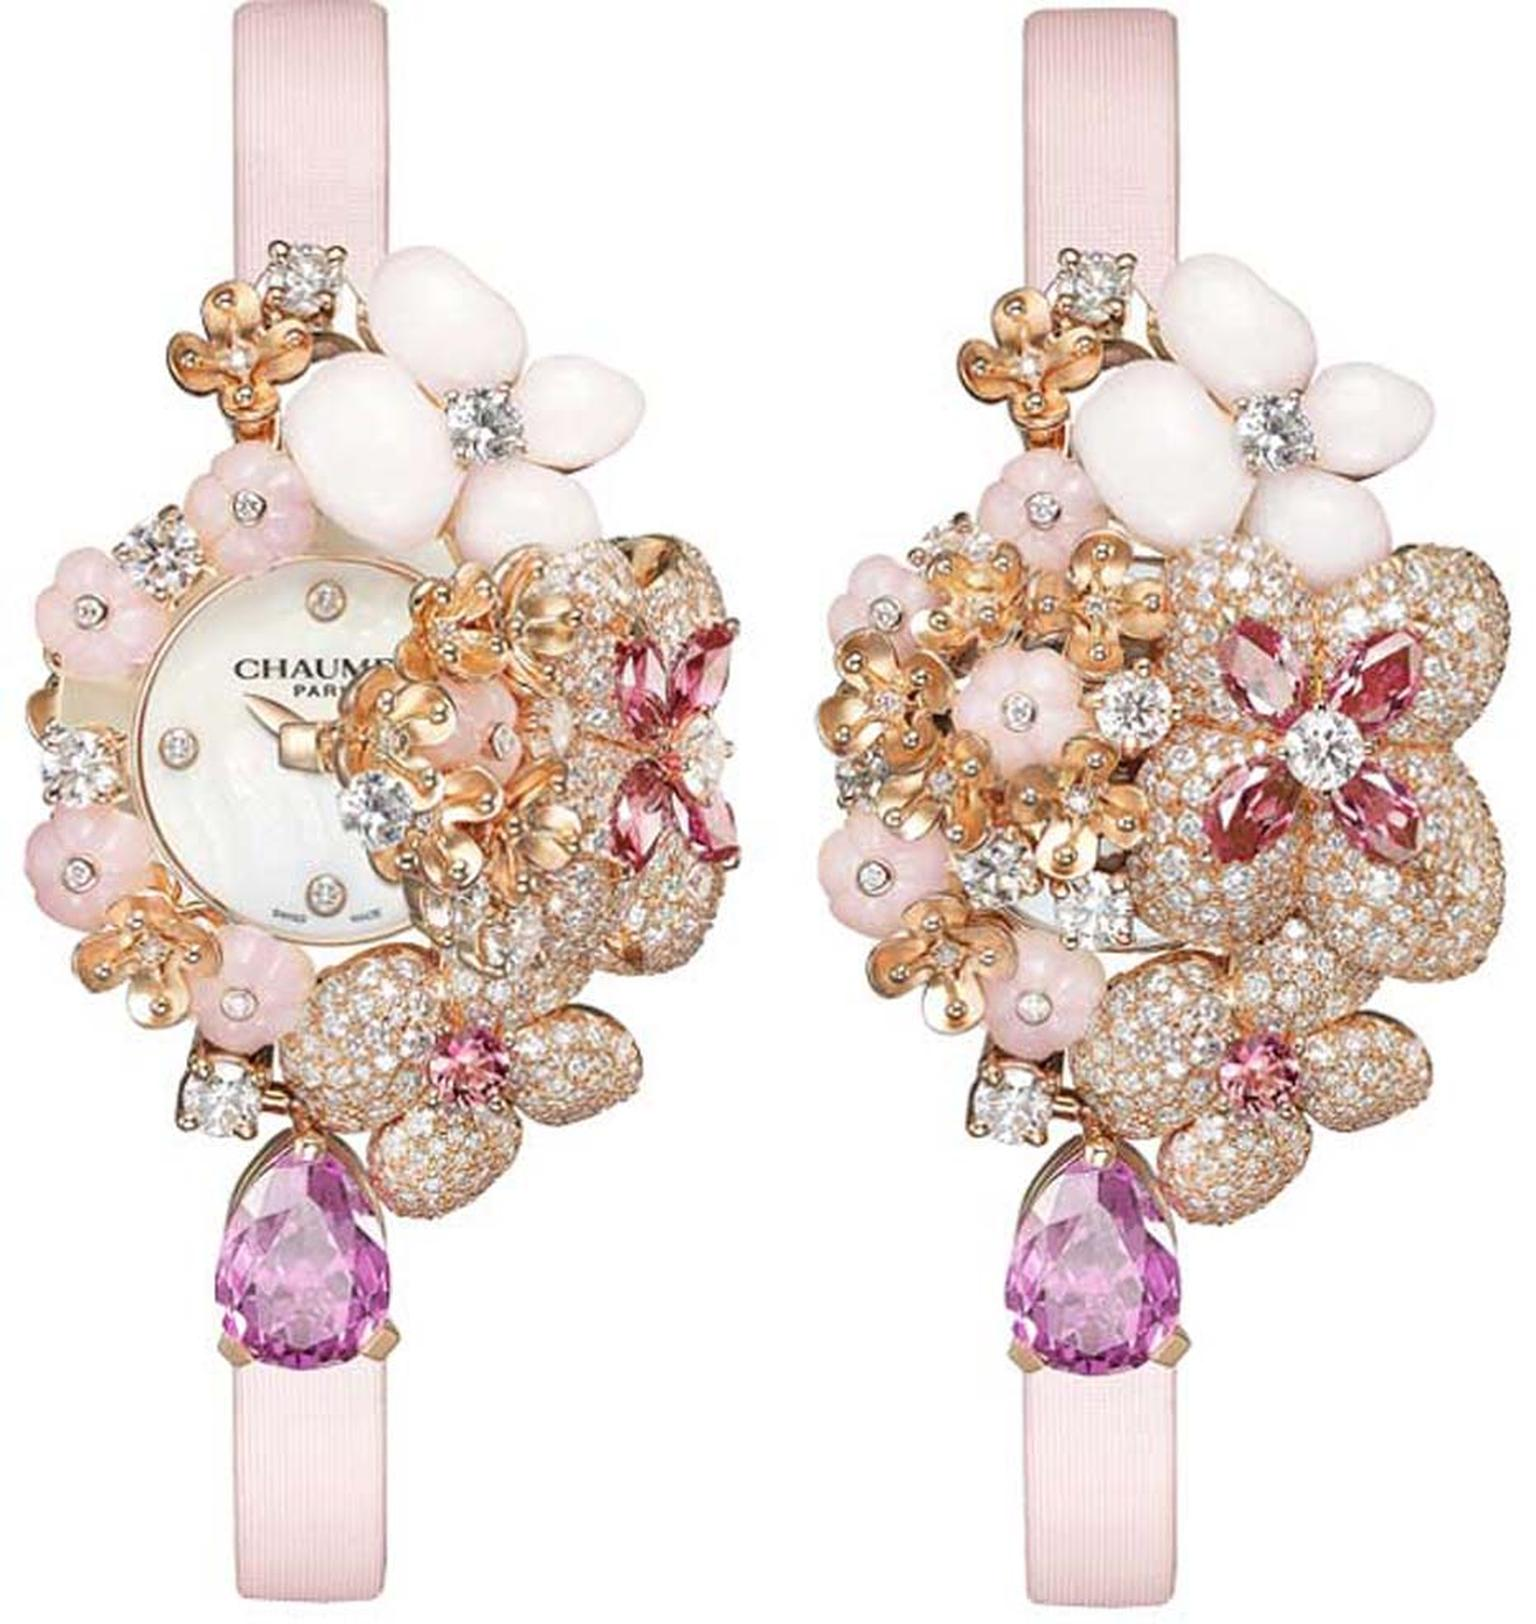 Chaumet Hortensia high jewellery secret watch forms part of the Hortensia jewellery collection and doubles up as wonderful bracelet presented on a pink satin strap.